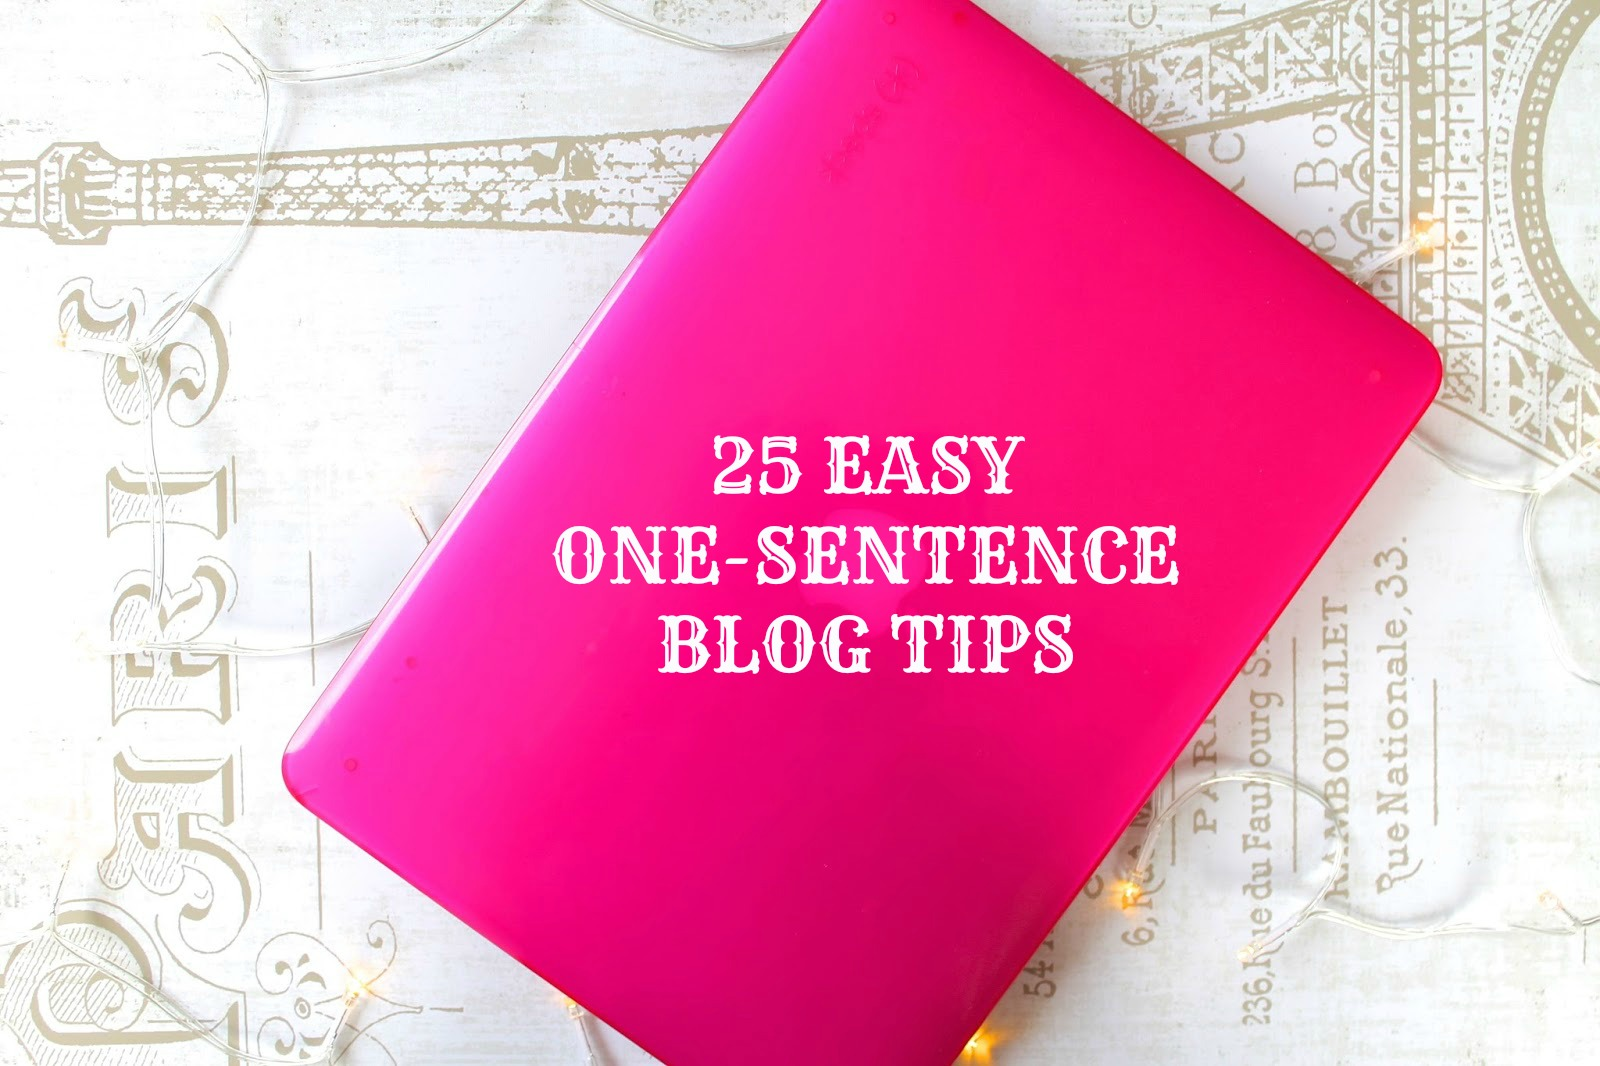 25 EASY BLOG TIPS